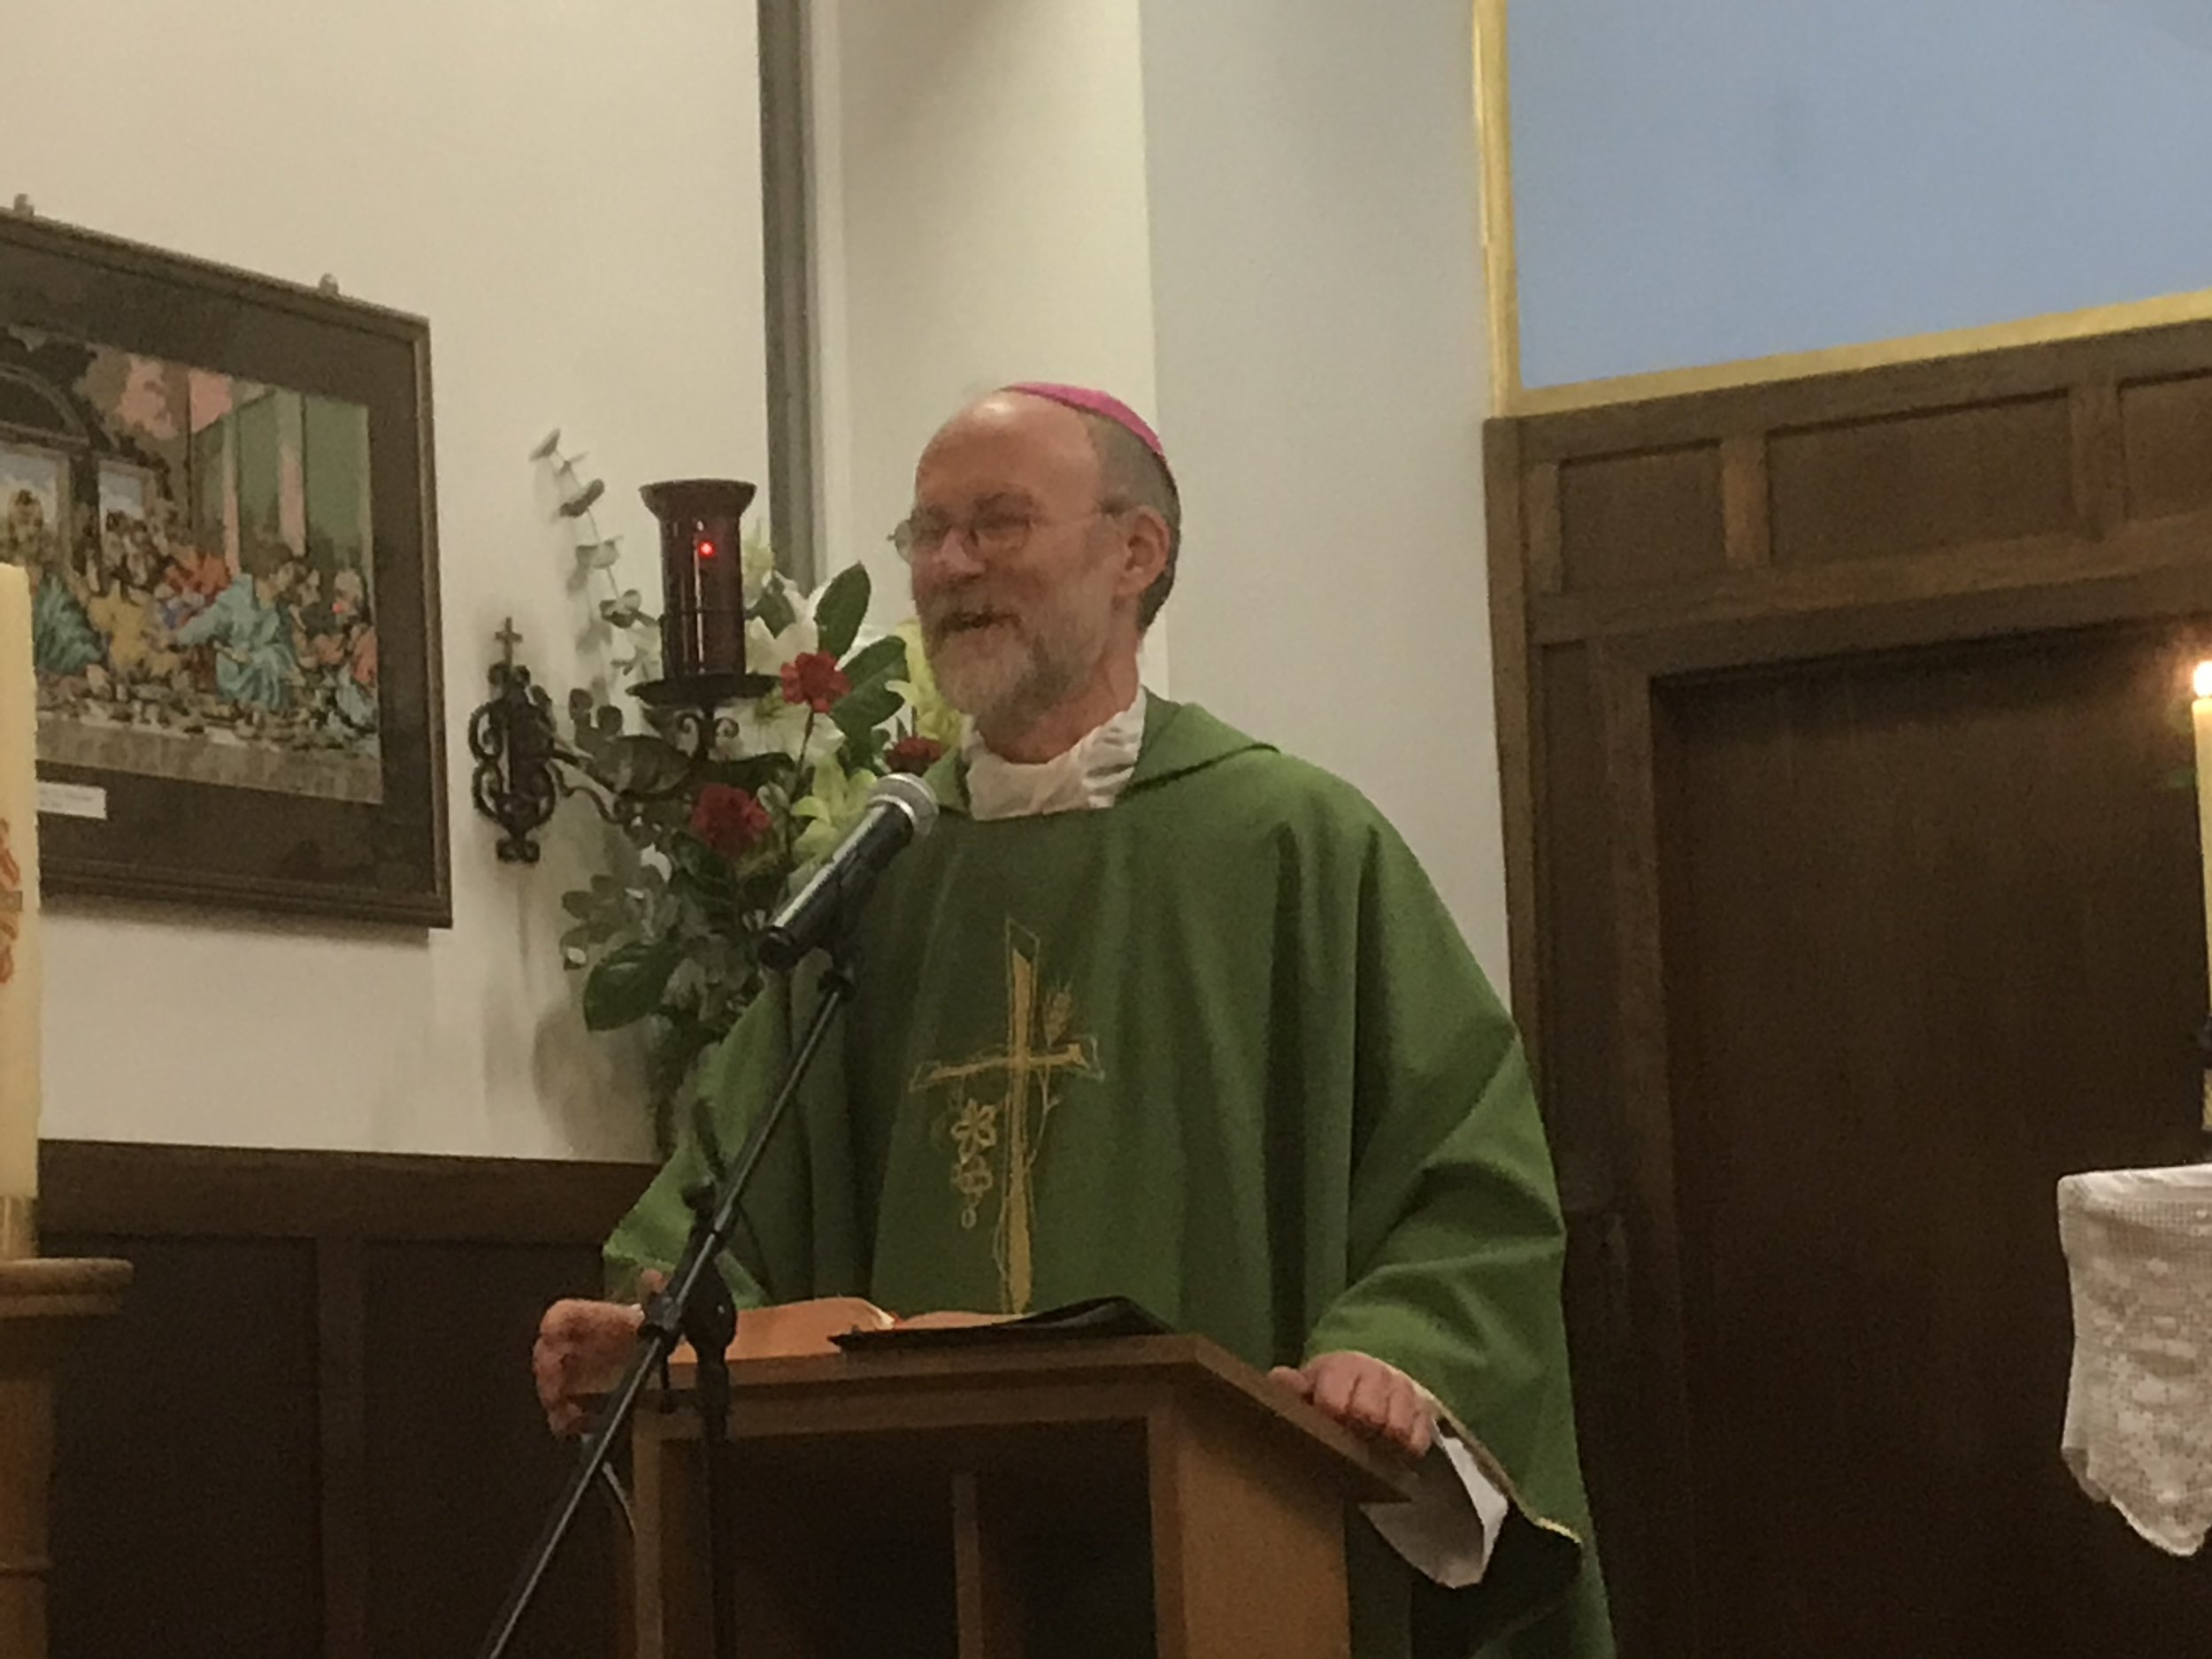 Bishop's visit to St Wulstan's 2019